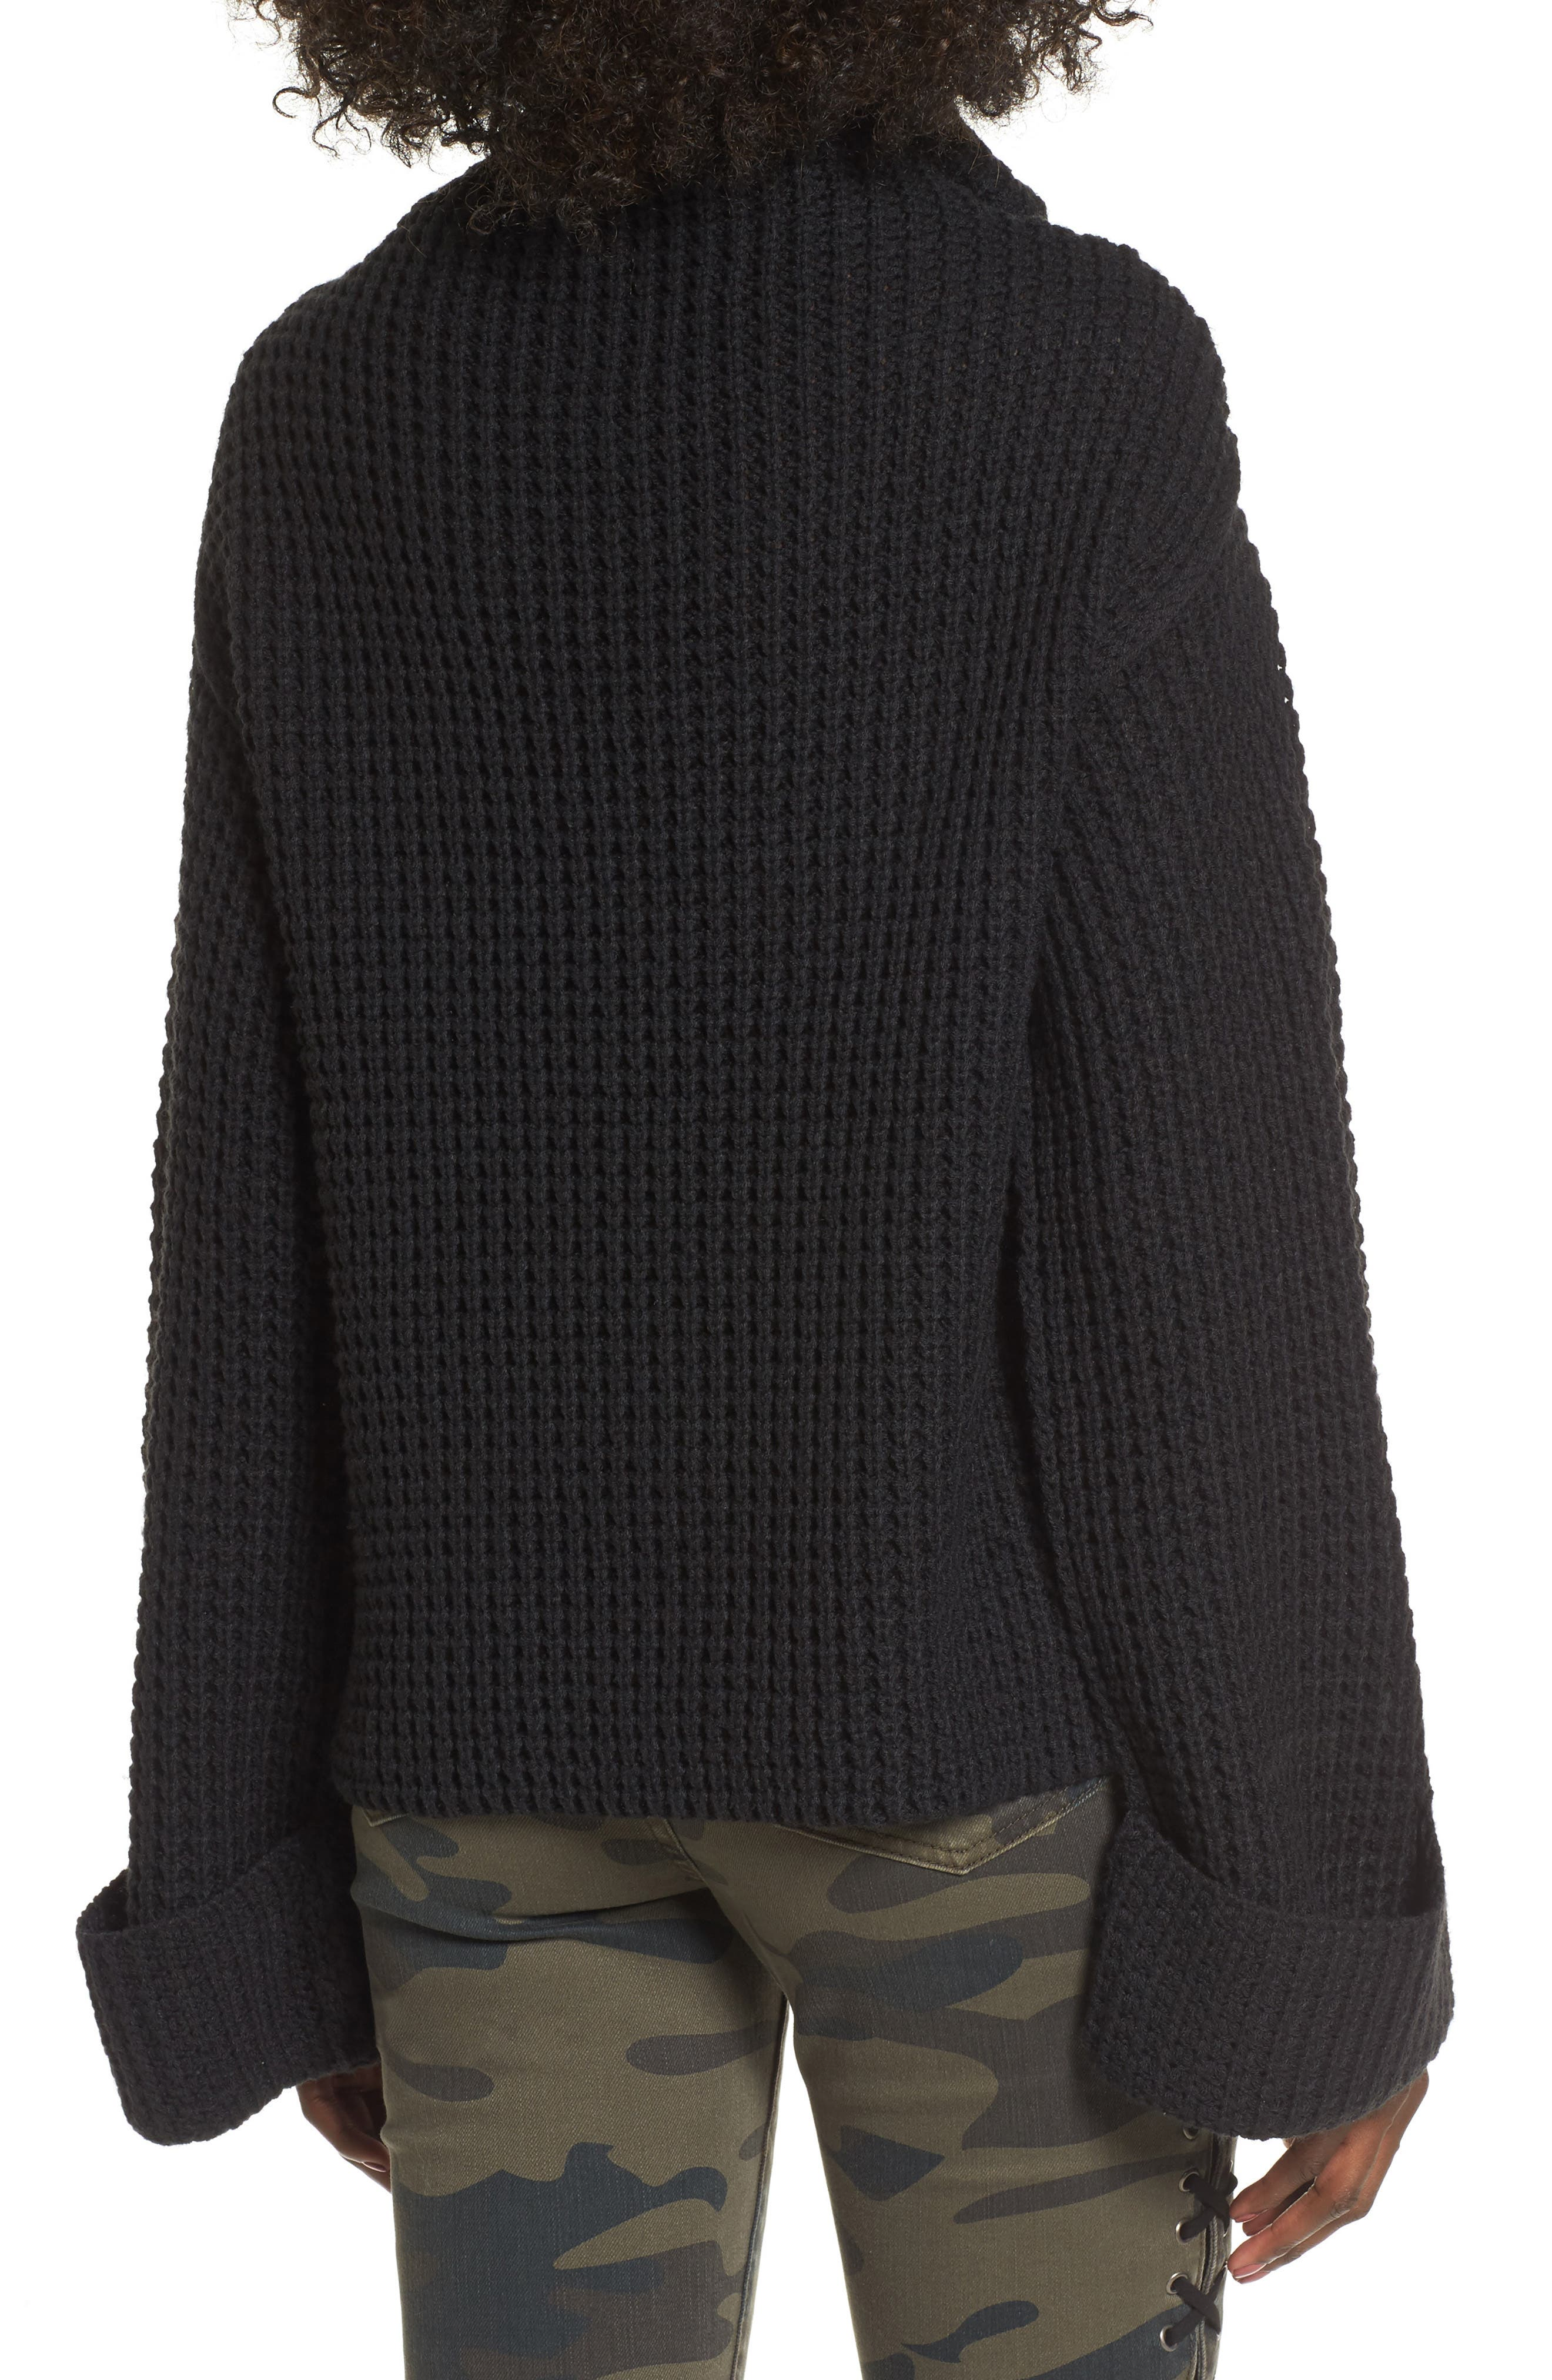 Cowl Neck Thermal Stitch Sweater,                             Alternate thumbnail 2, color,                             001